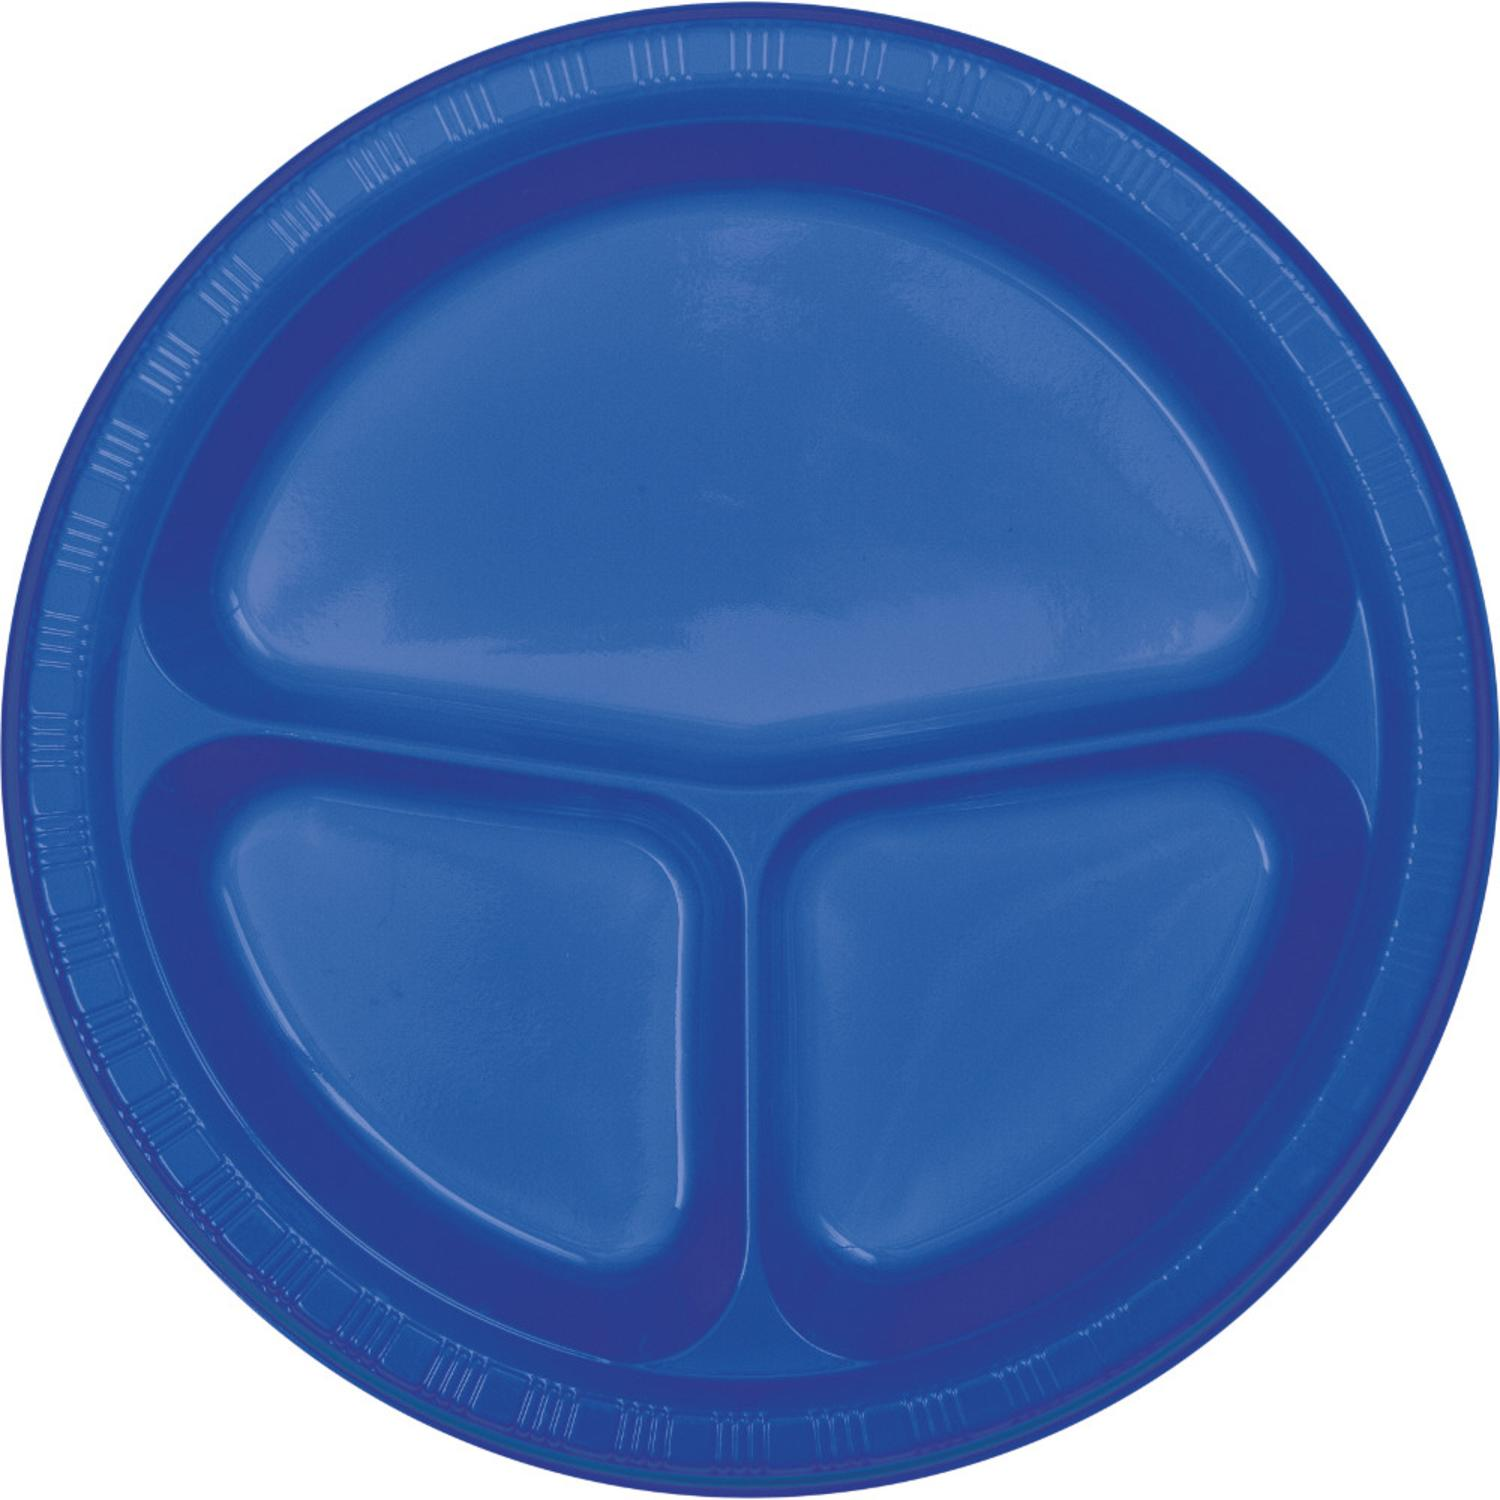 Club Pack of 200 Cobalt Blue Compartment Dinner Party Plates 10.25   sc 1 st  Walmart.com & Club Pack of 200 Cobalt Blue Compartment Dinner Party Plates 10.25 ...